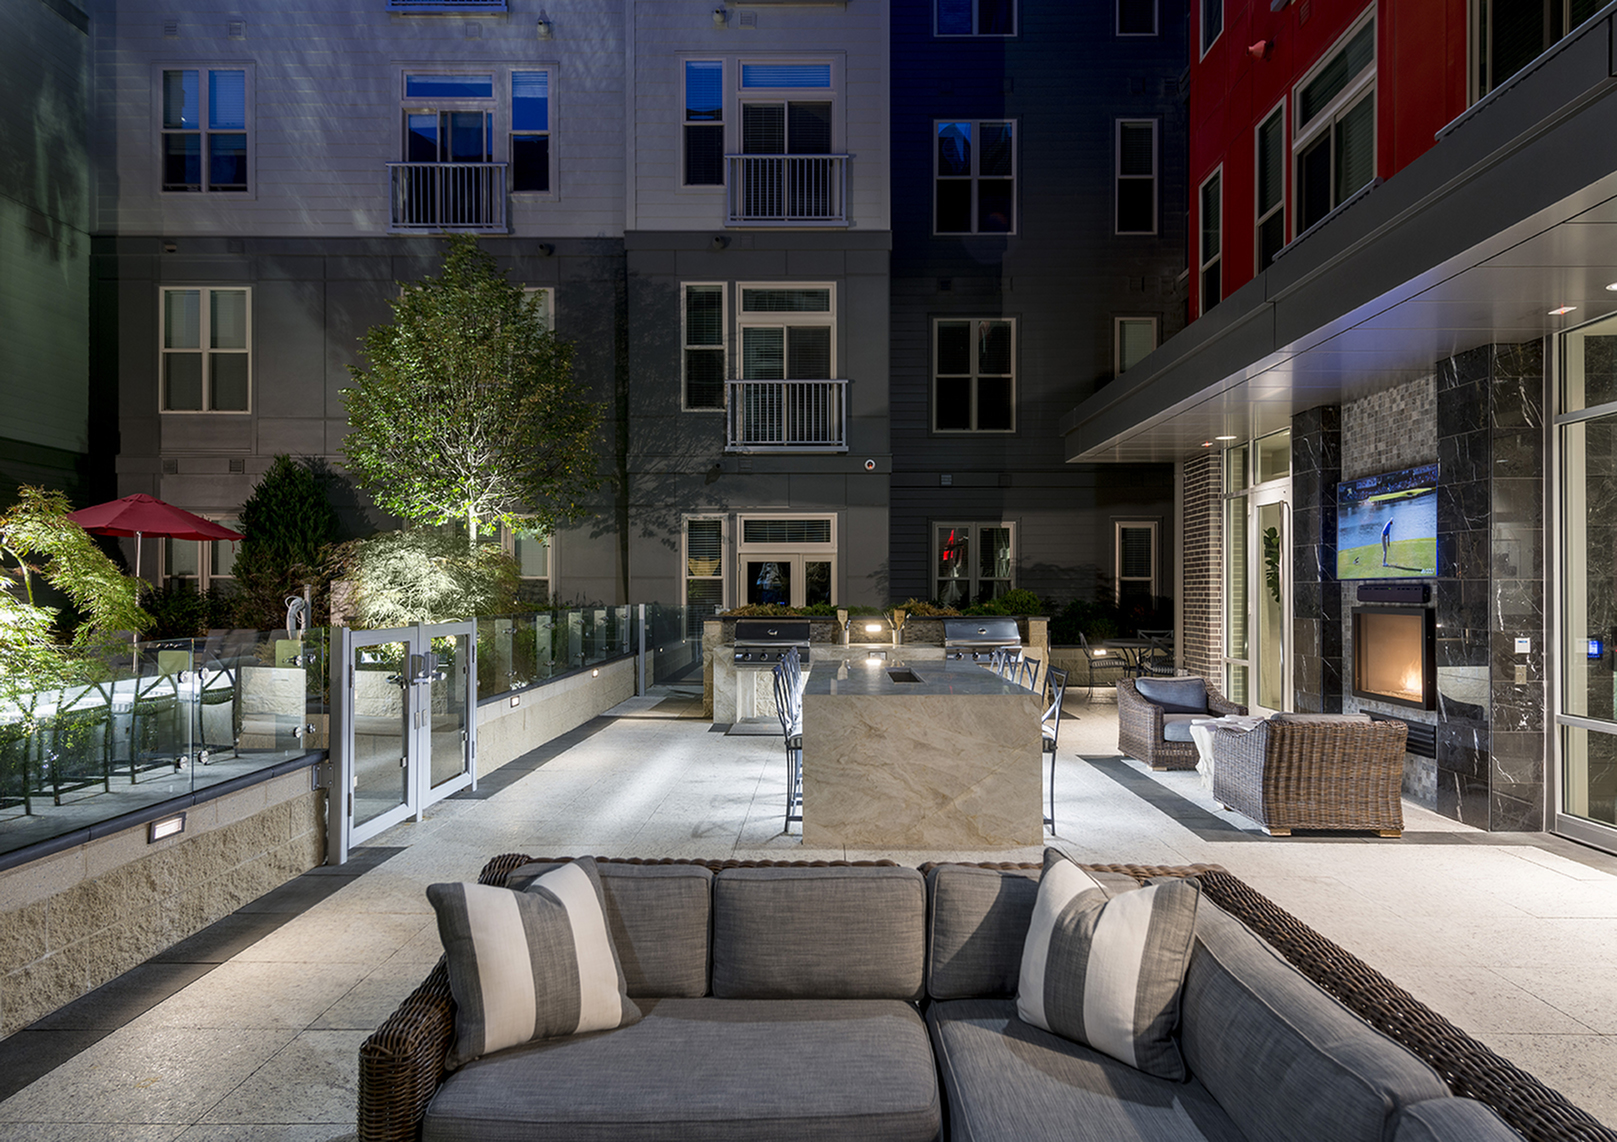 Two landscaped courtyards with dining and grilling stations at Hanover Alewife